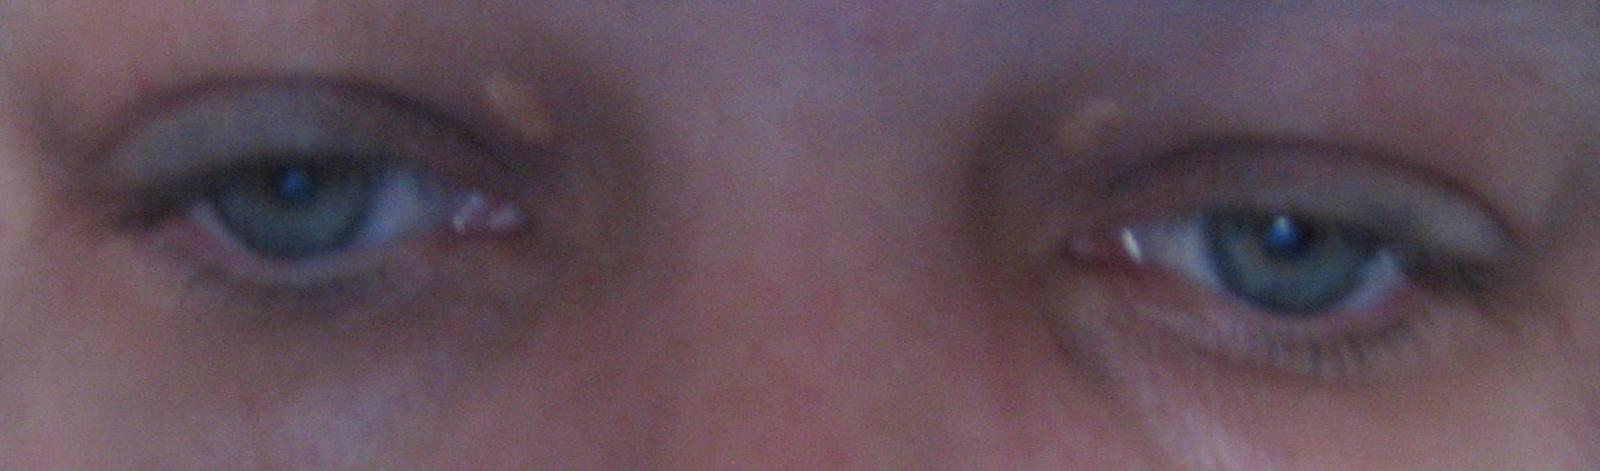 spots above eye lids?? Anyone Know what causes this?-eyes-005.jpg